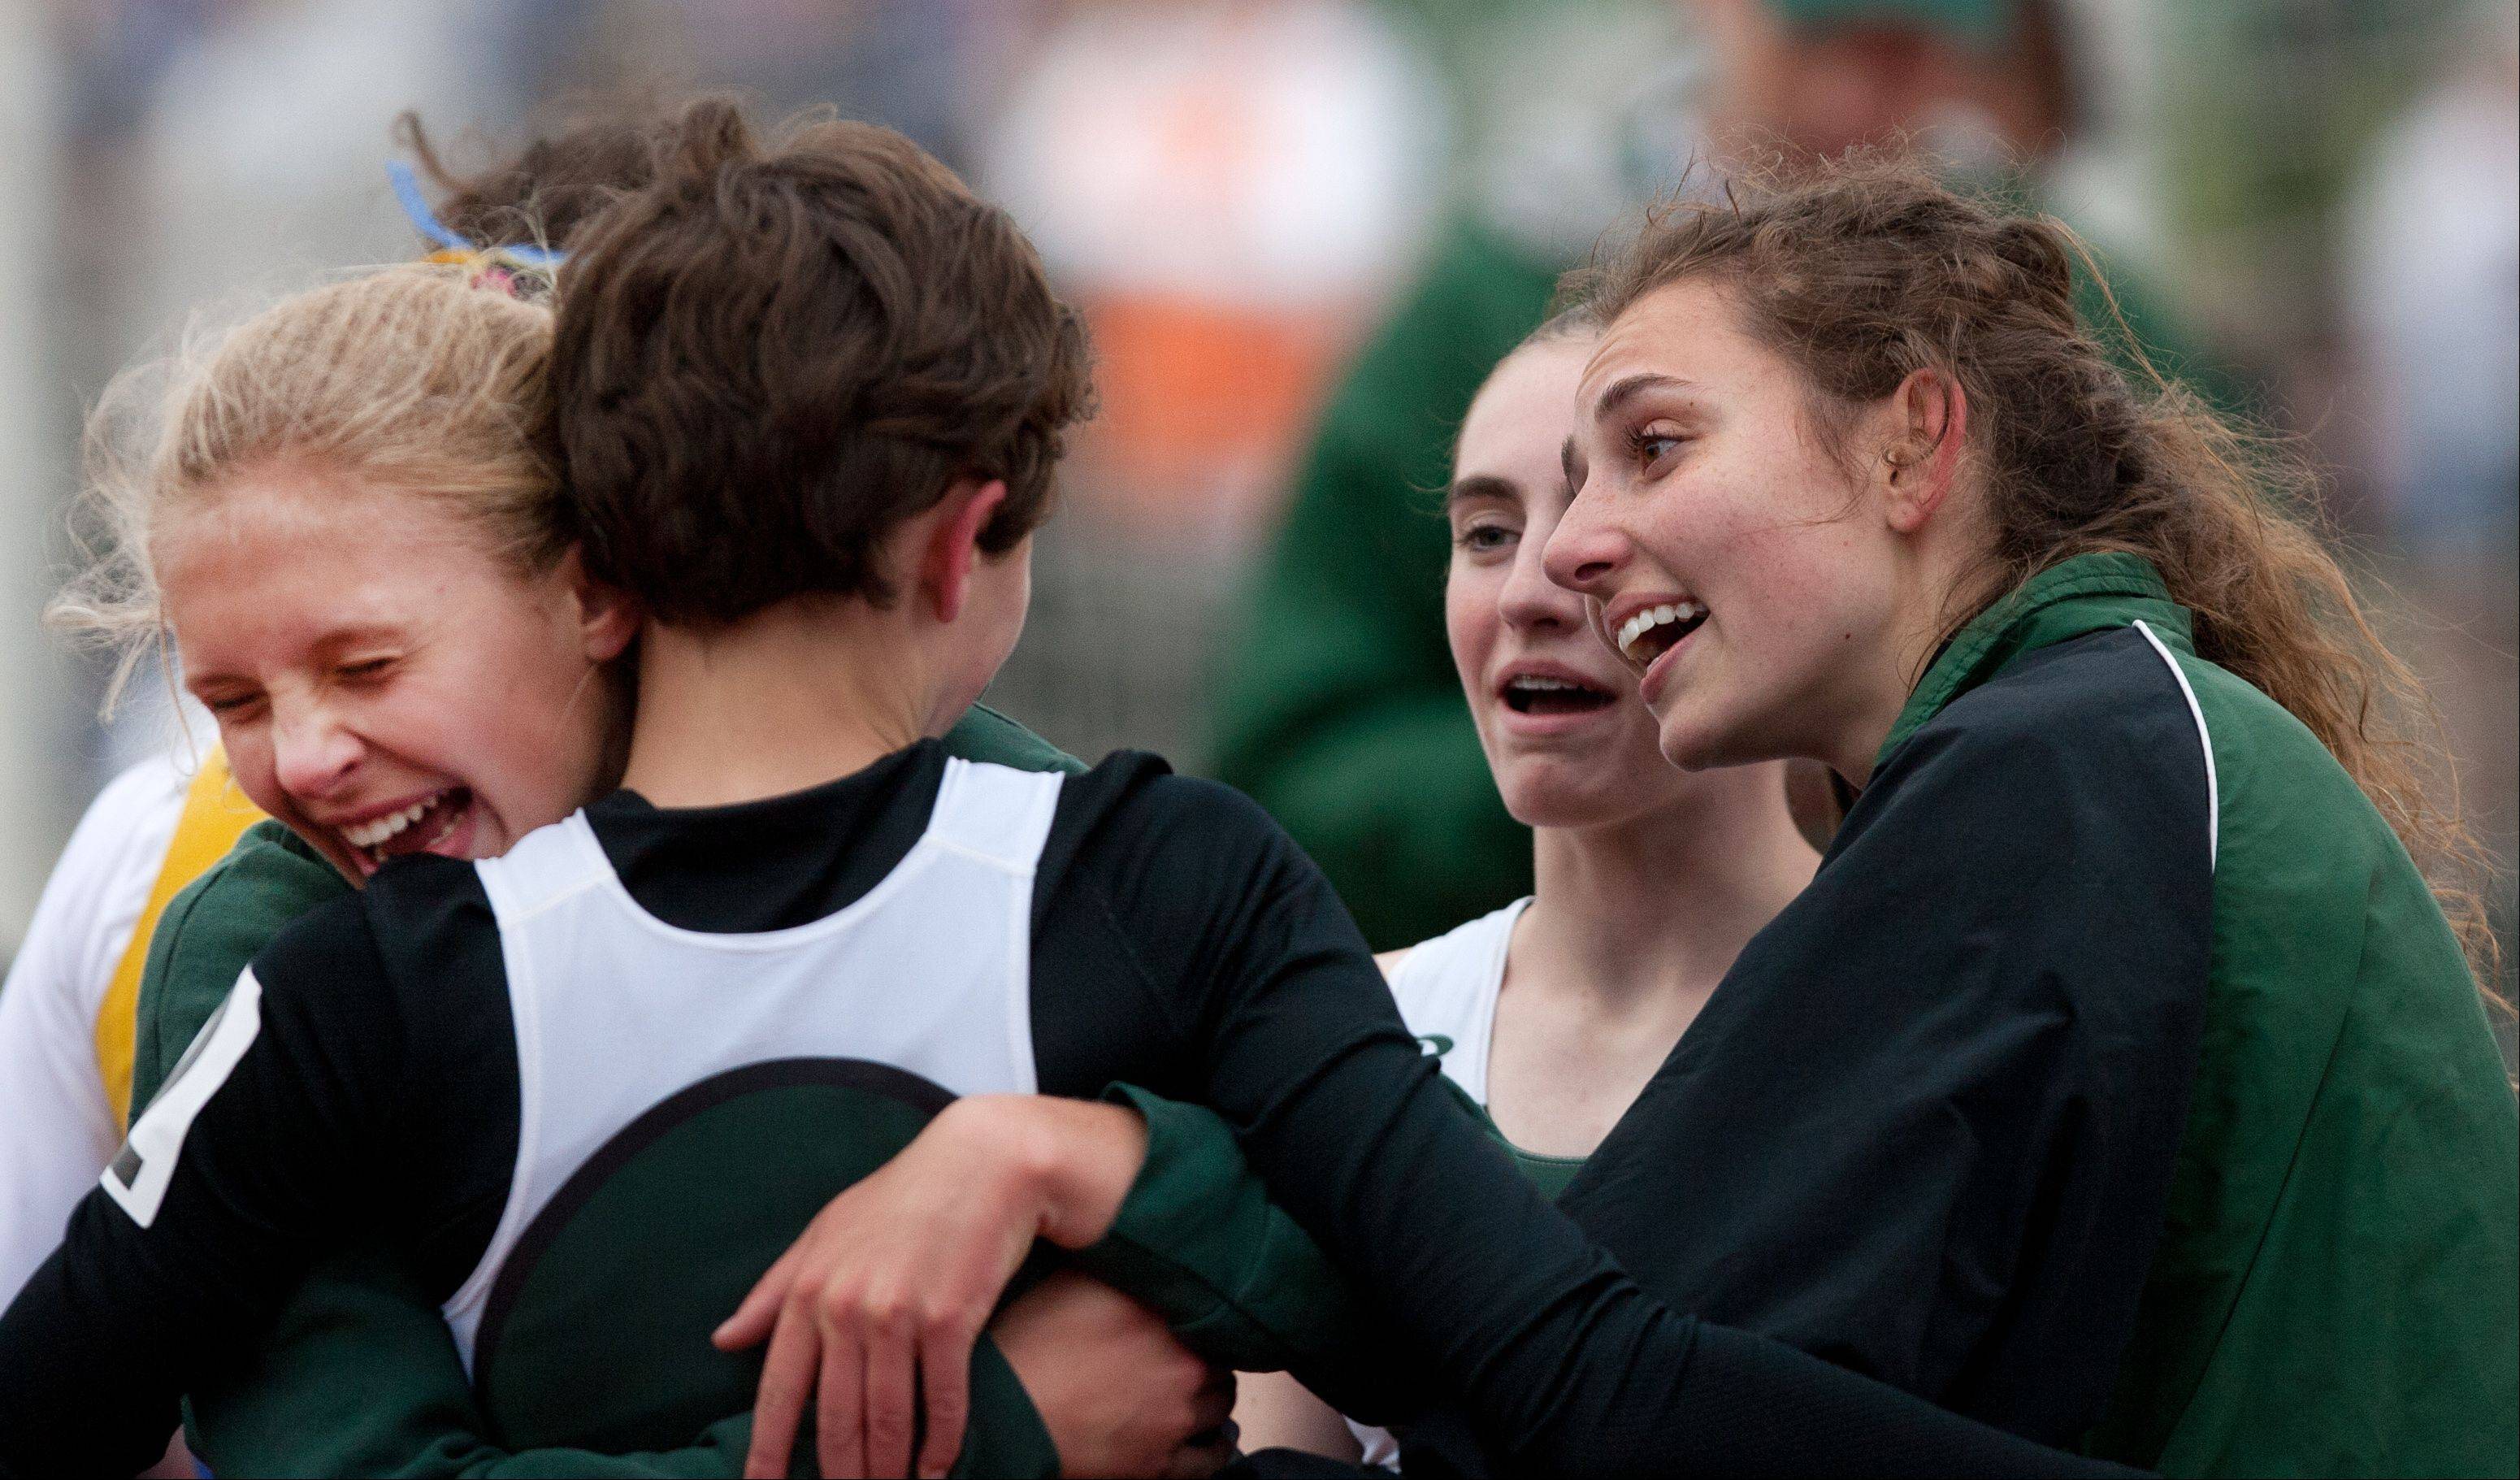 Glenbard West's Christina Sedall, facing away, celebrates her team's 3,200 Meter Relay second play finish during the York Girls Track and Field Sectional meet.